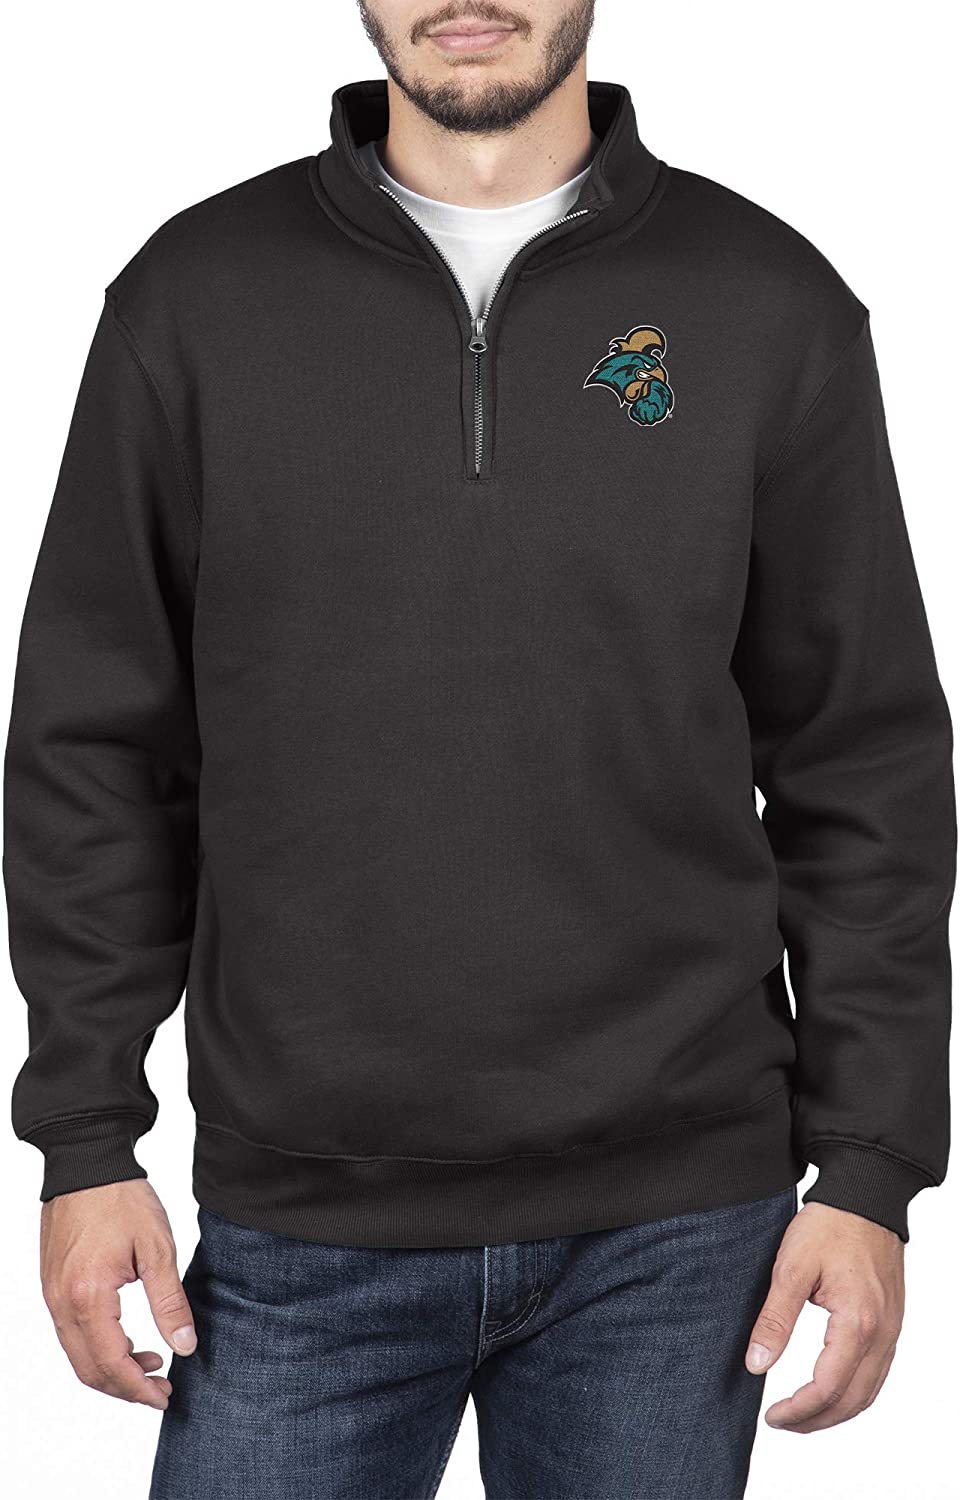 Top of the World Mens Team Color Classic Quarter Zip Pullover